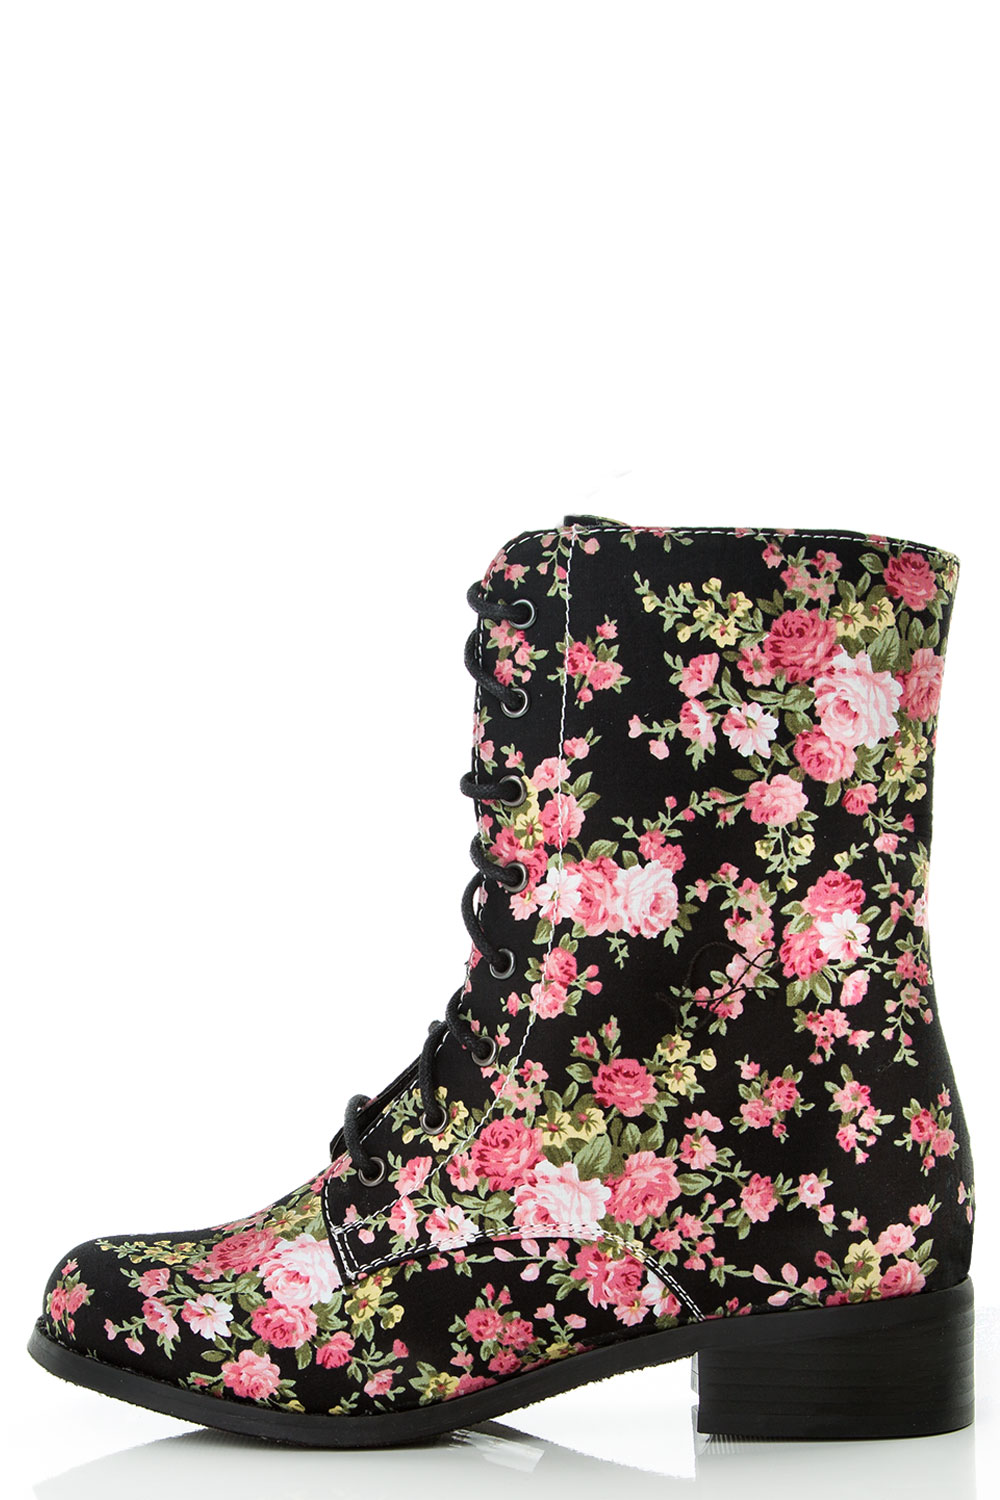 ELLIMAX.COM :: PRODUCTS :: Shoes :: Boots :: Mid-Calf :: Floral ...